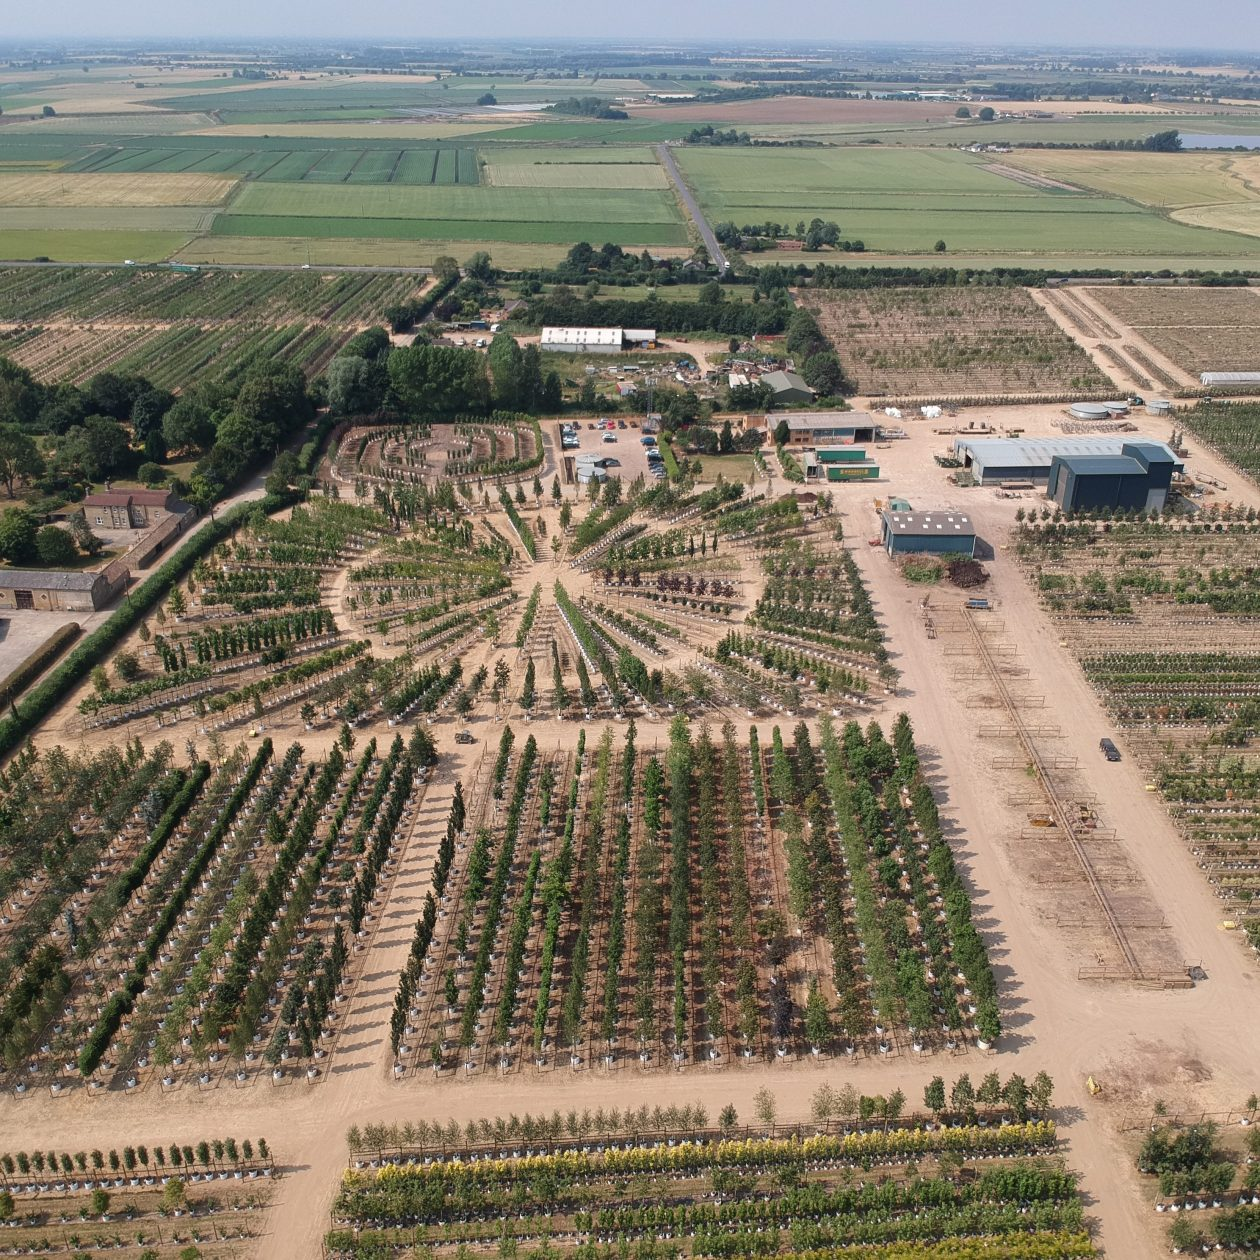 The tree nursery at Barcham Trees showing the circular display area